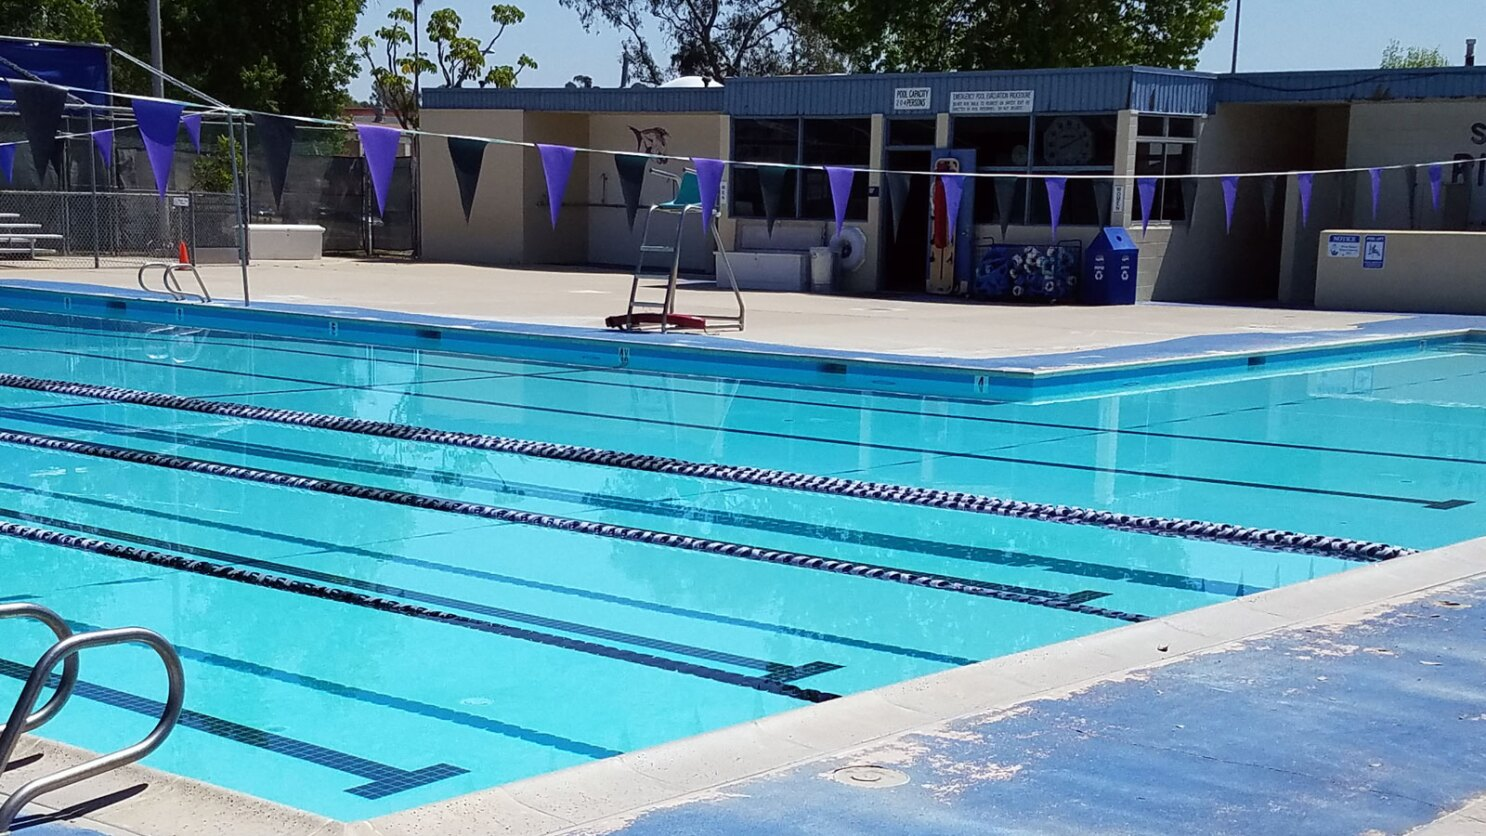 San Diego To Spend 2m Repairing City Pools Amid Complaints About Closures The San Diego Union Tribune